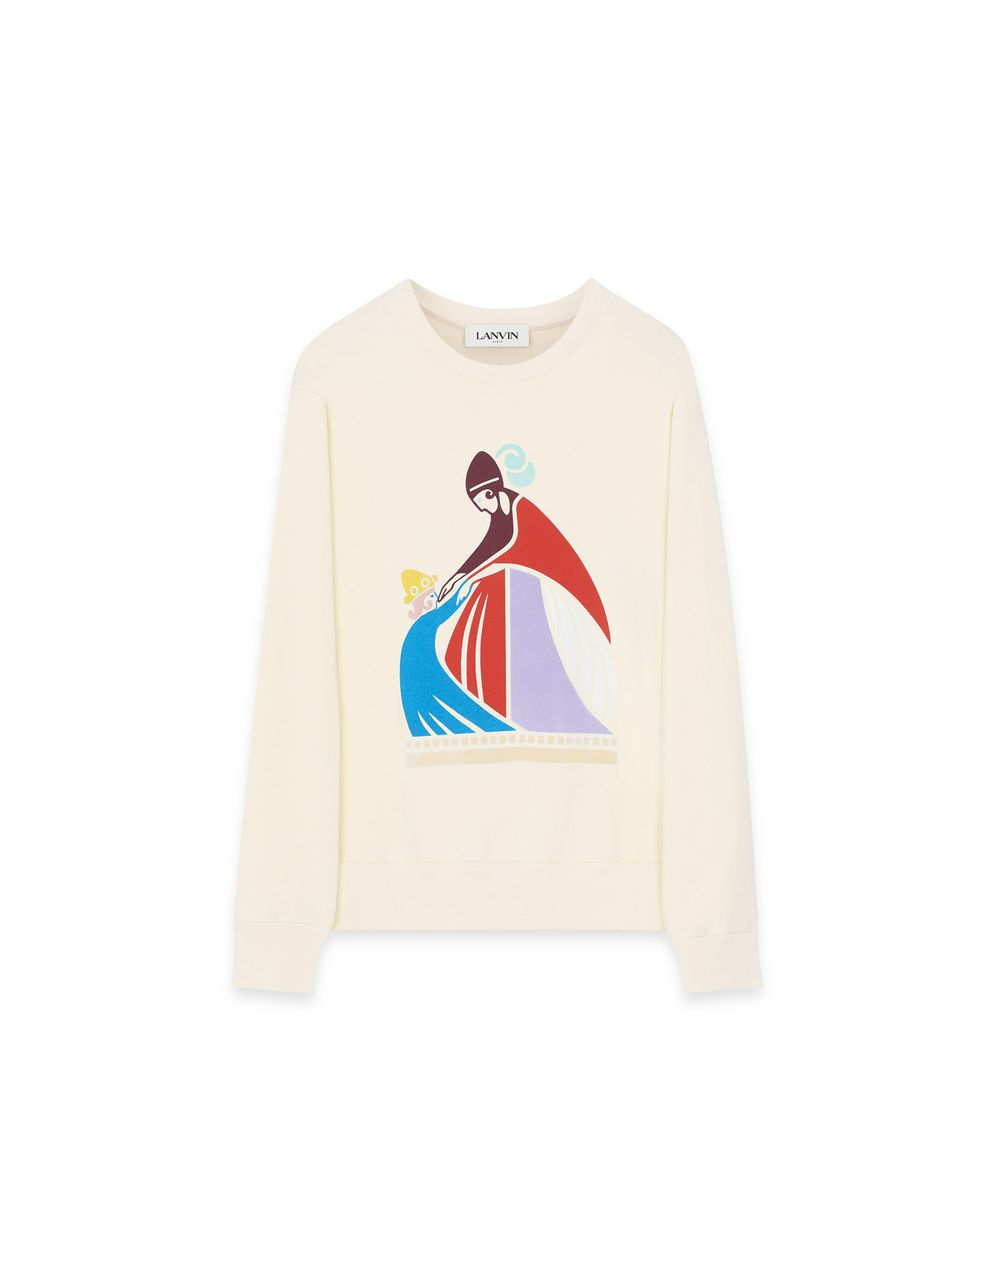 MOTHER AND CHILD PRINT SWEATSHIRT - Lanvin